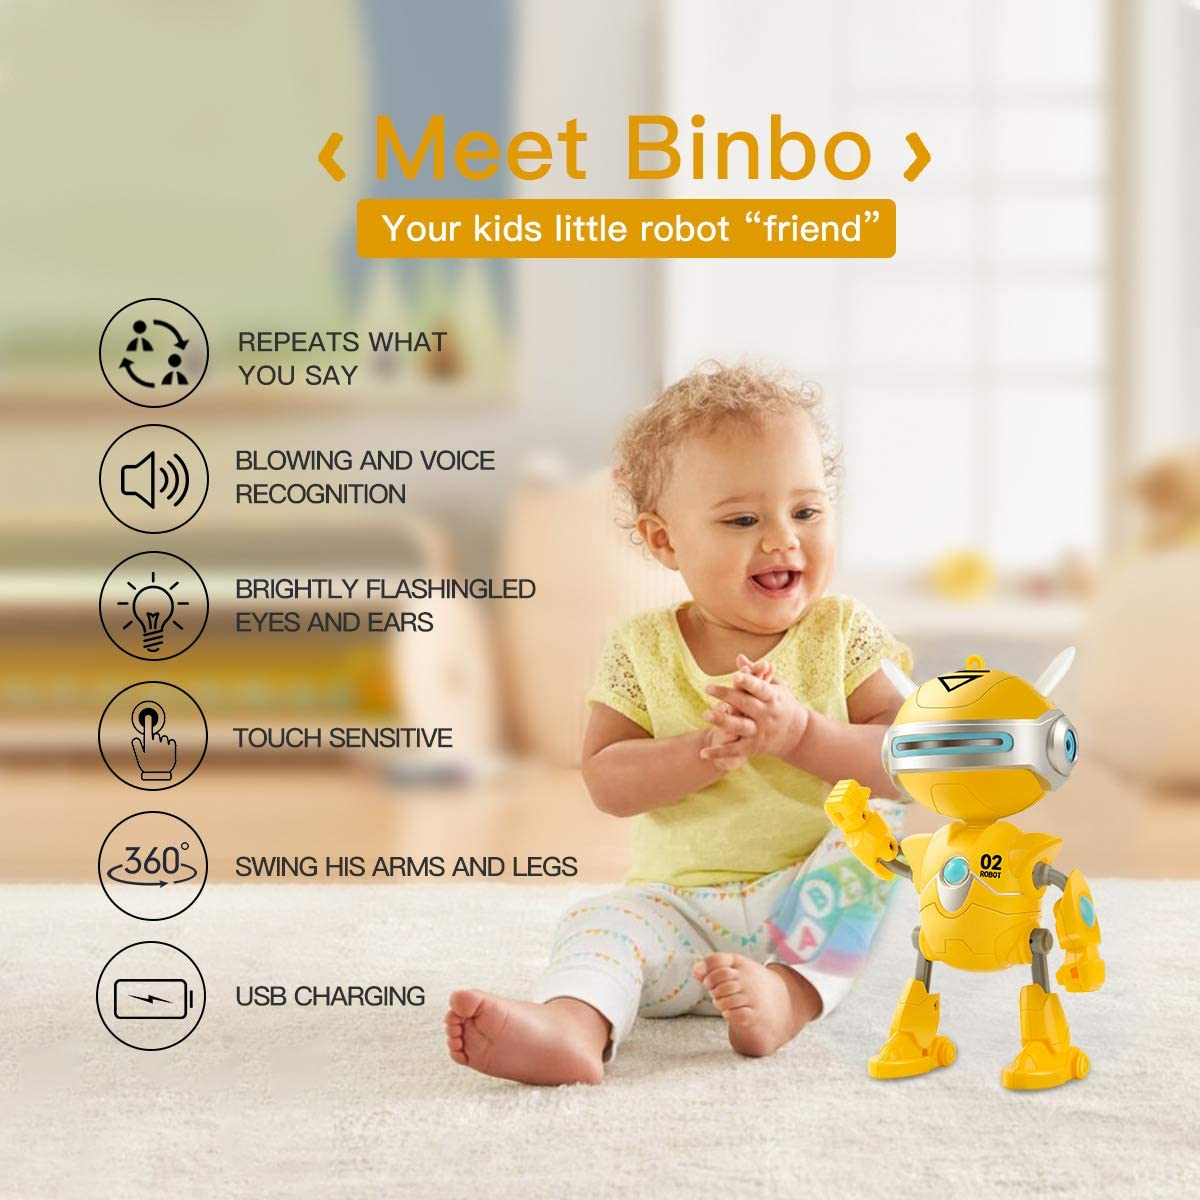 . Talking Repeat /& Swing Function Robot Toys for Boys or Girls,Robot Toys Kids Gift for Ages 3 Years Old /& Up Boy Toys Robot BINBO for Kids,Interactive Mini Robots 3.7v with USB Charging Yellow